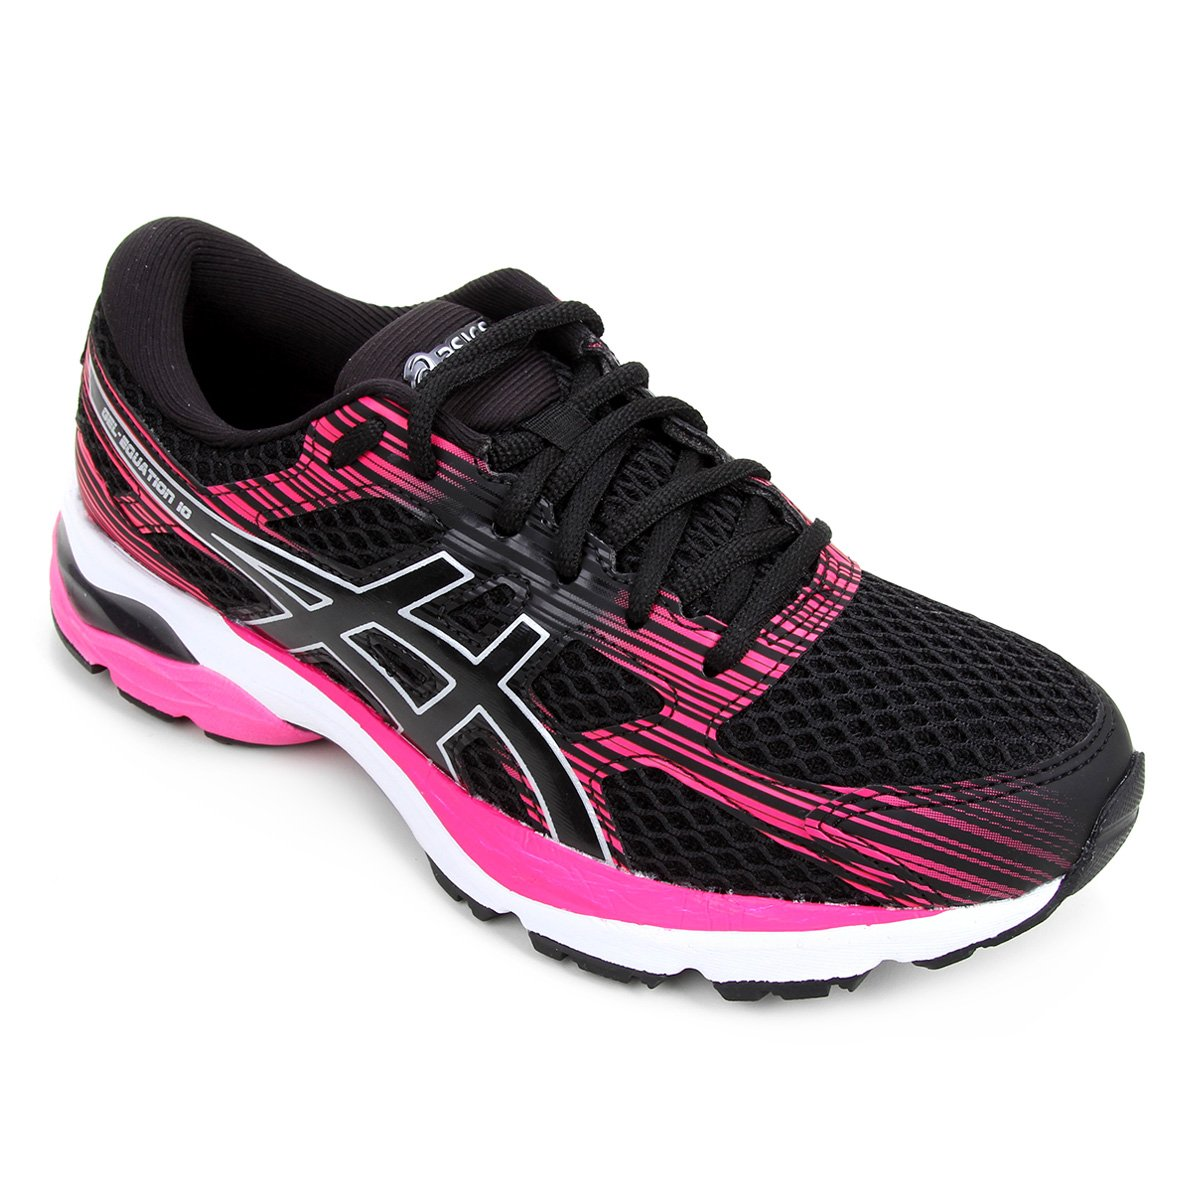 Tênis Asics Gel-Equation 10 Feminino - Preto